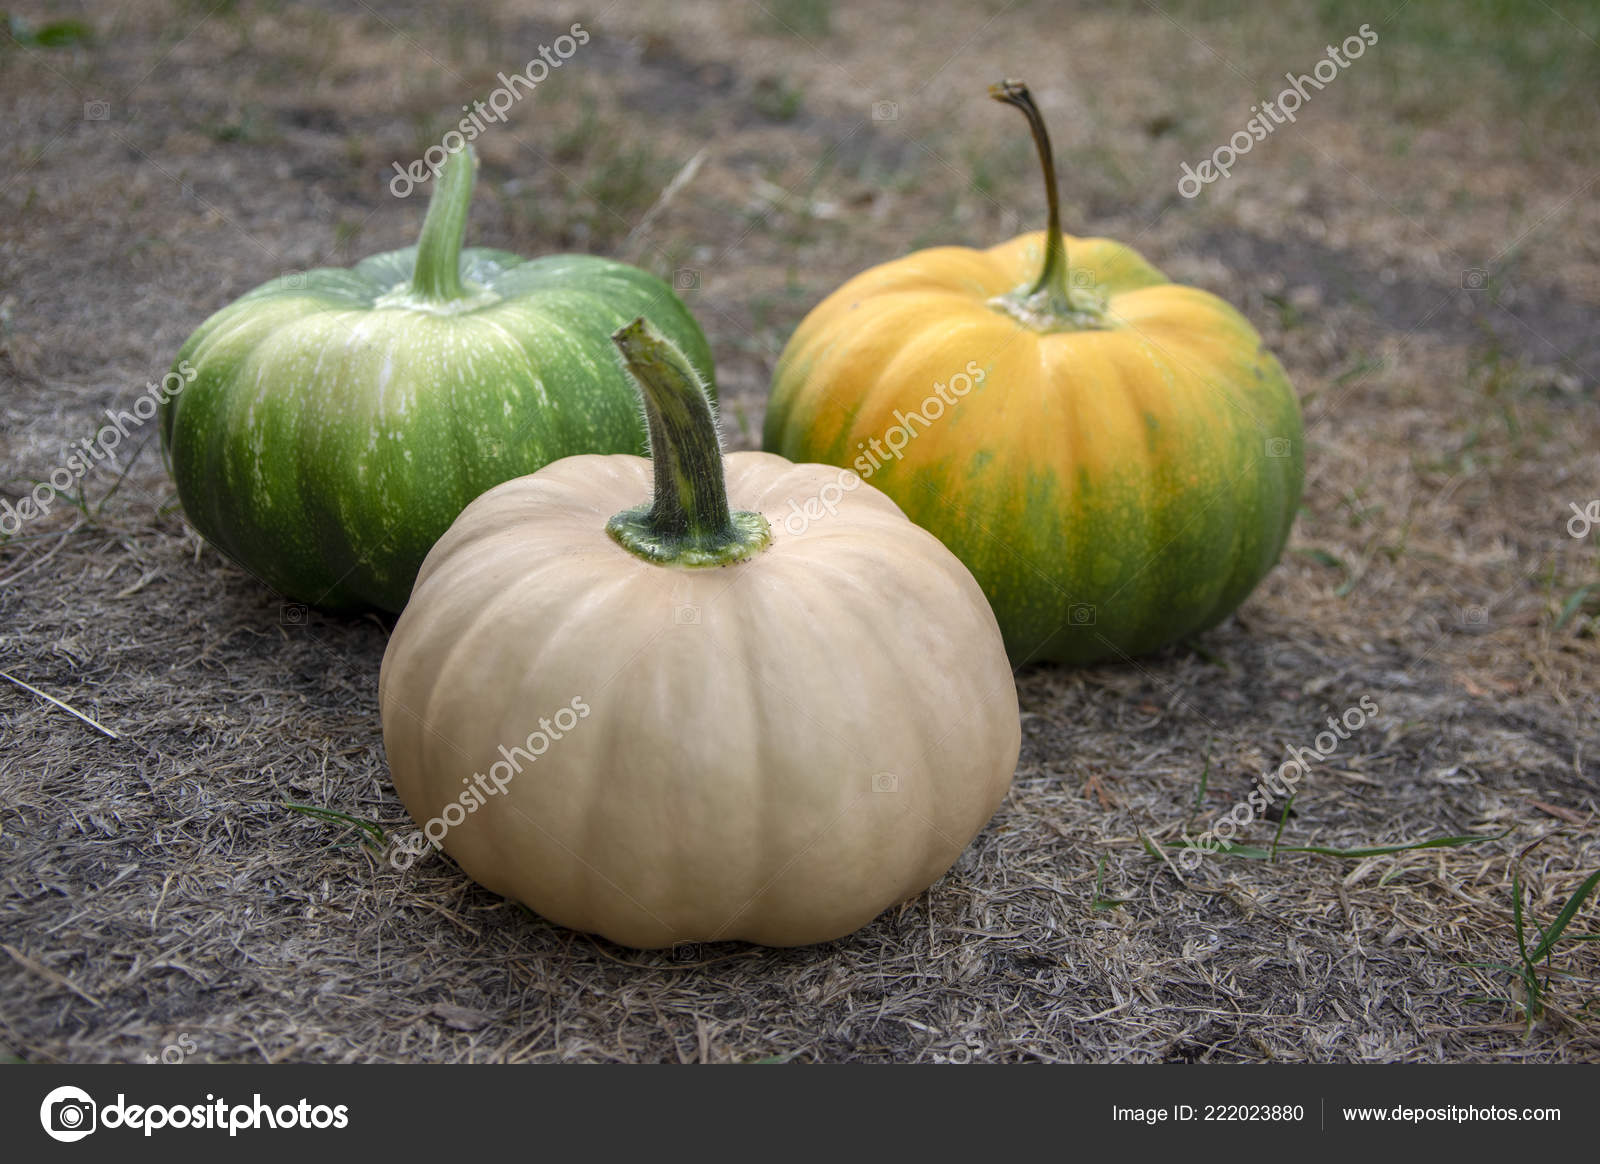 Long Island Cheese Pumpkin Stock Photos Royalty Free Long Island Cheese Pumpkin Images Depositphotos